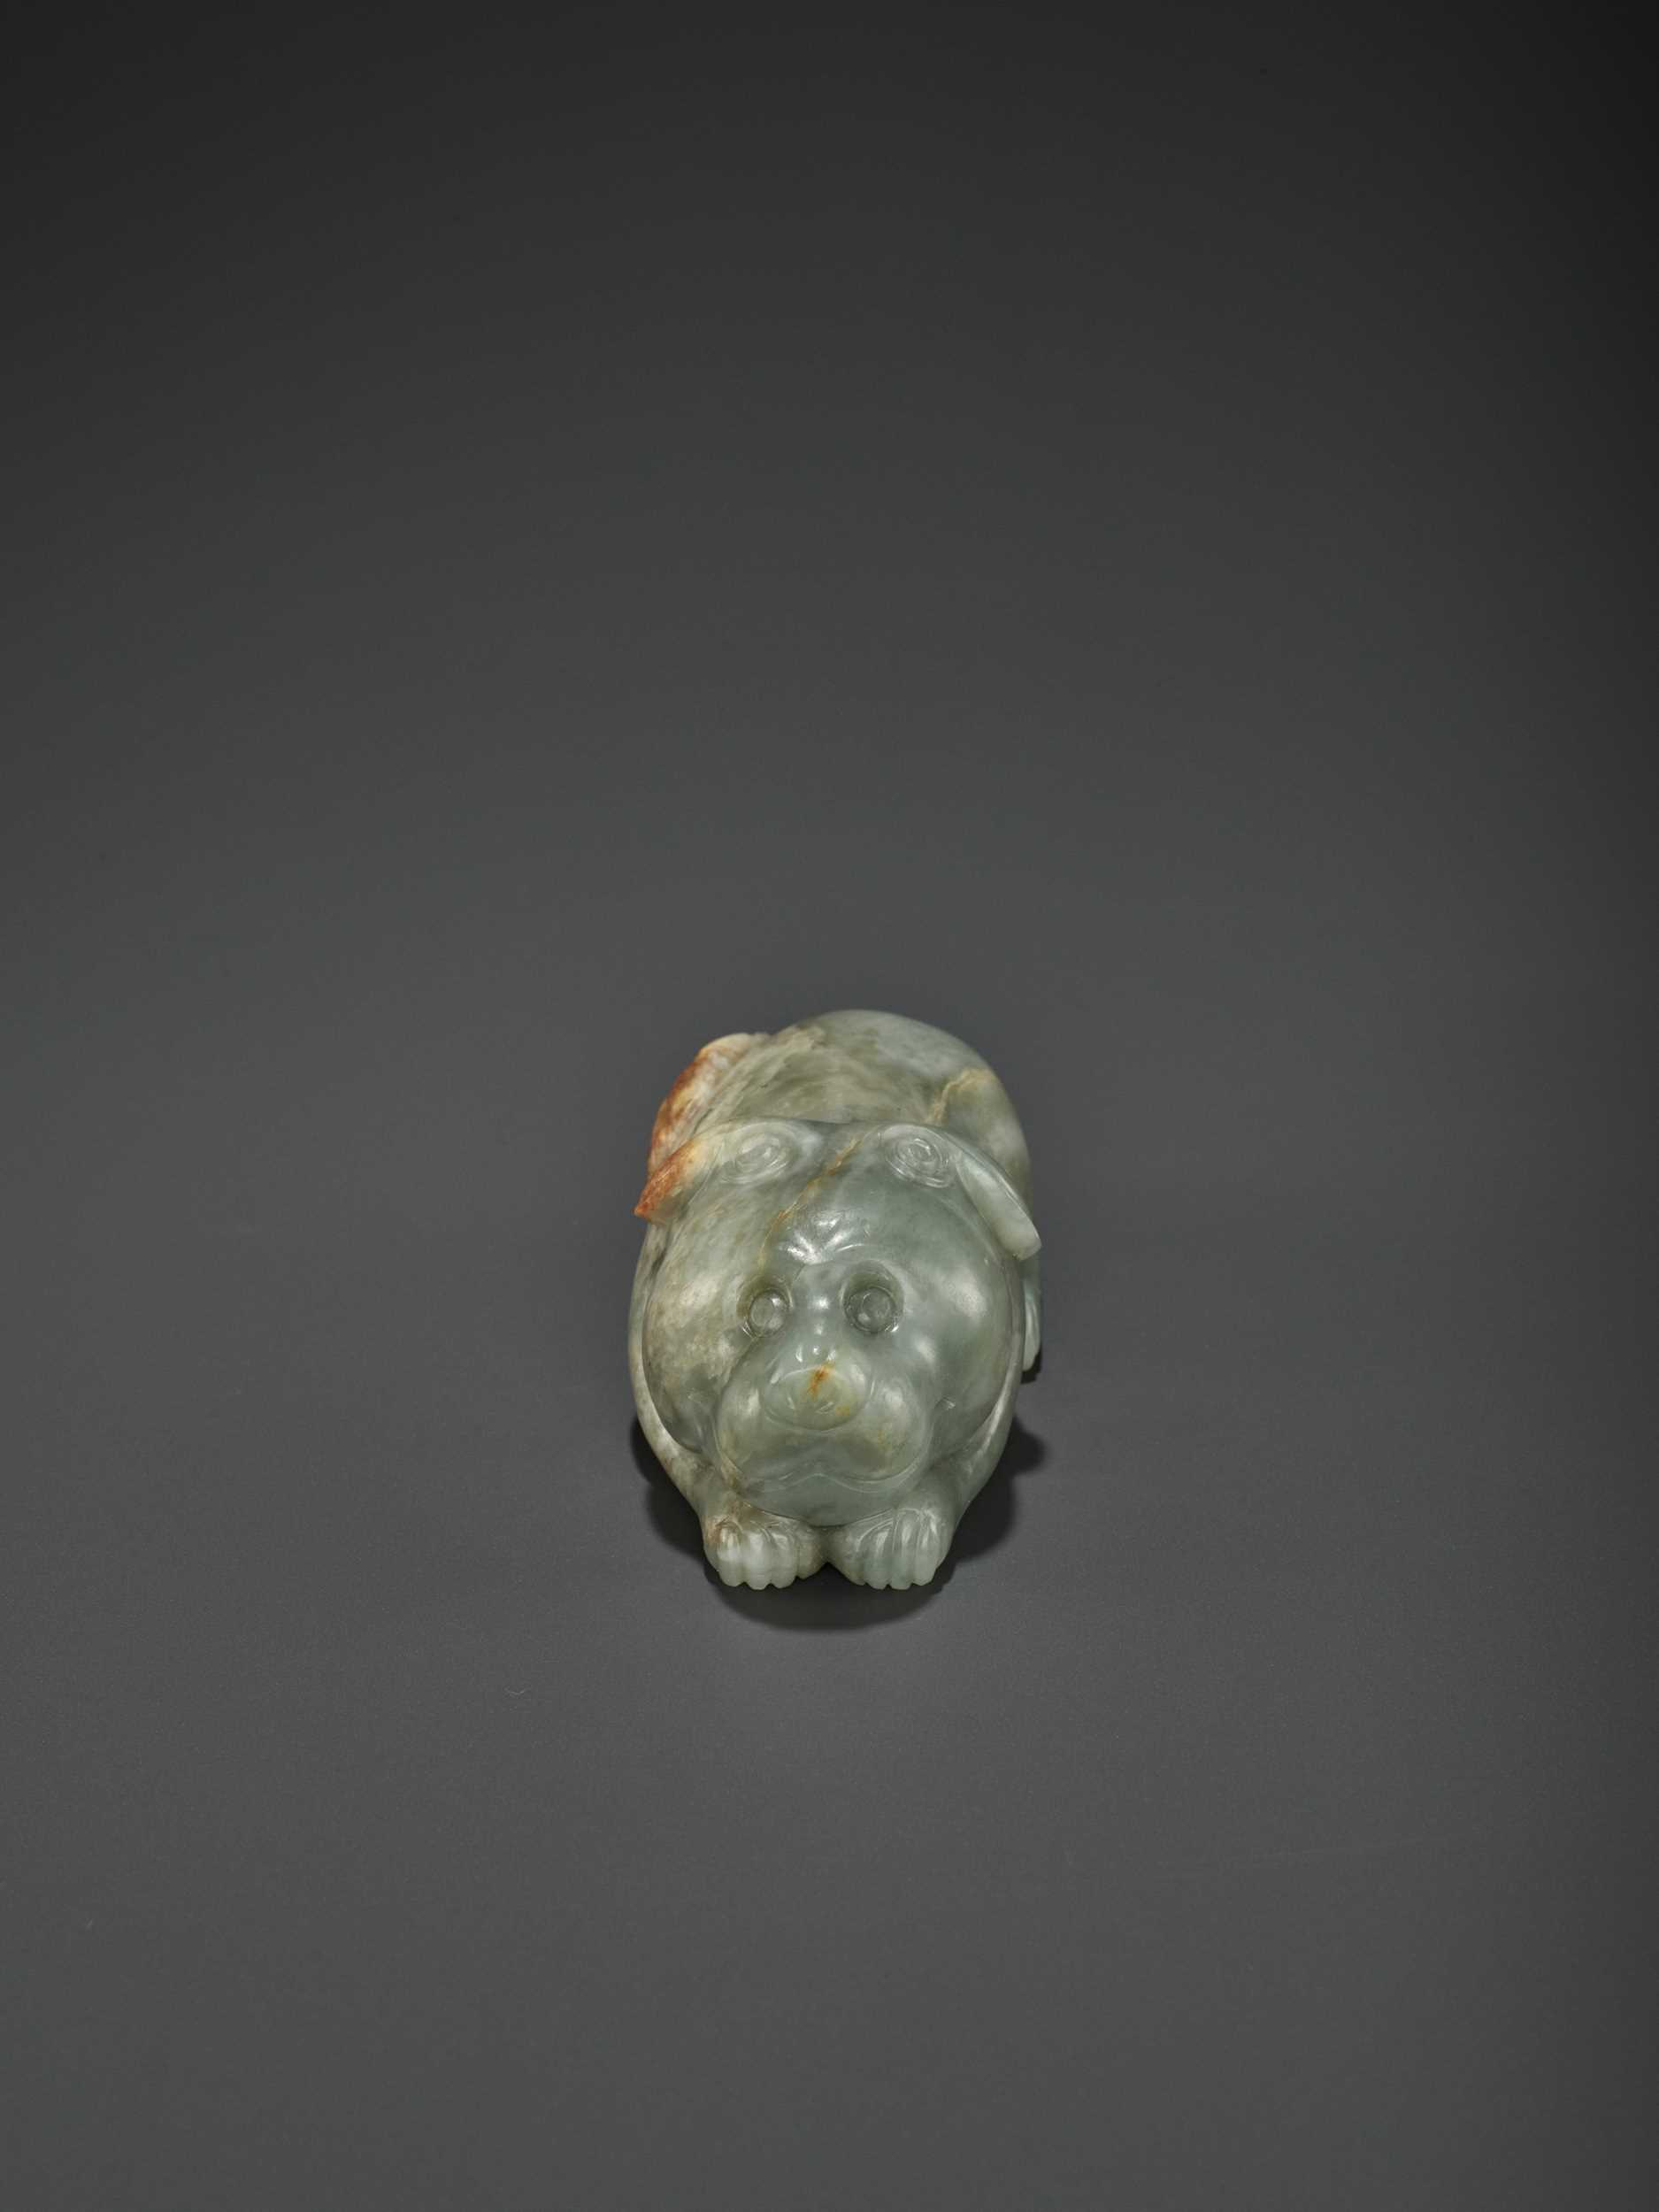 Lot 72 - A CARVED CELADON AND RUSSET JADE FIGURE OF A DOG, LATE MING DYNASTY